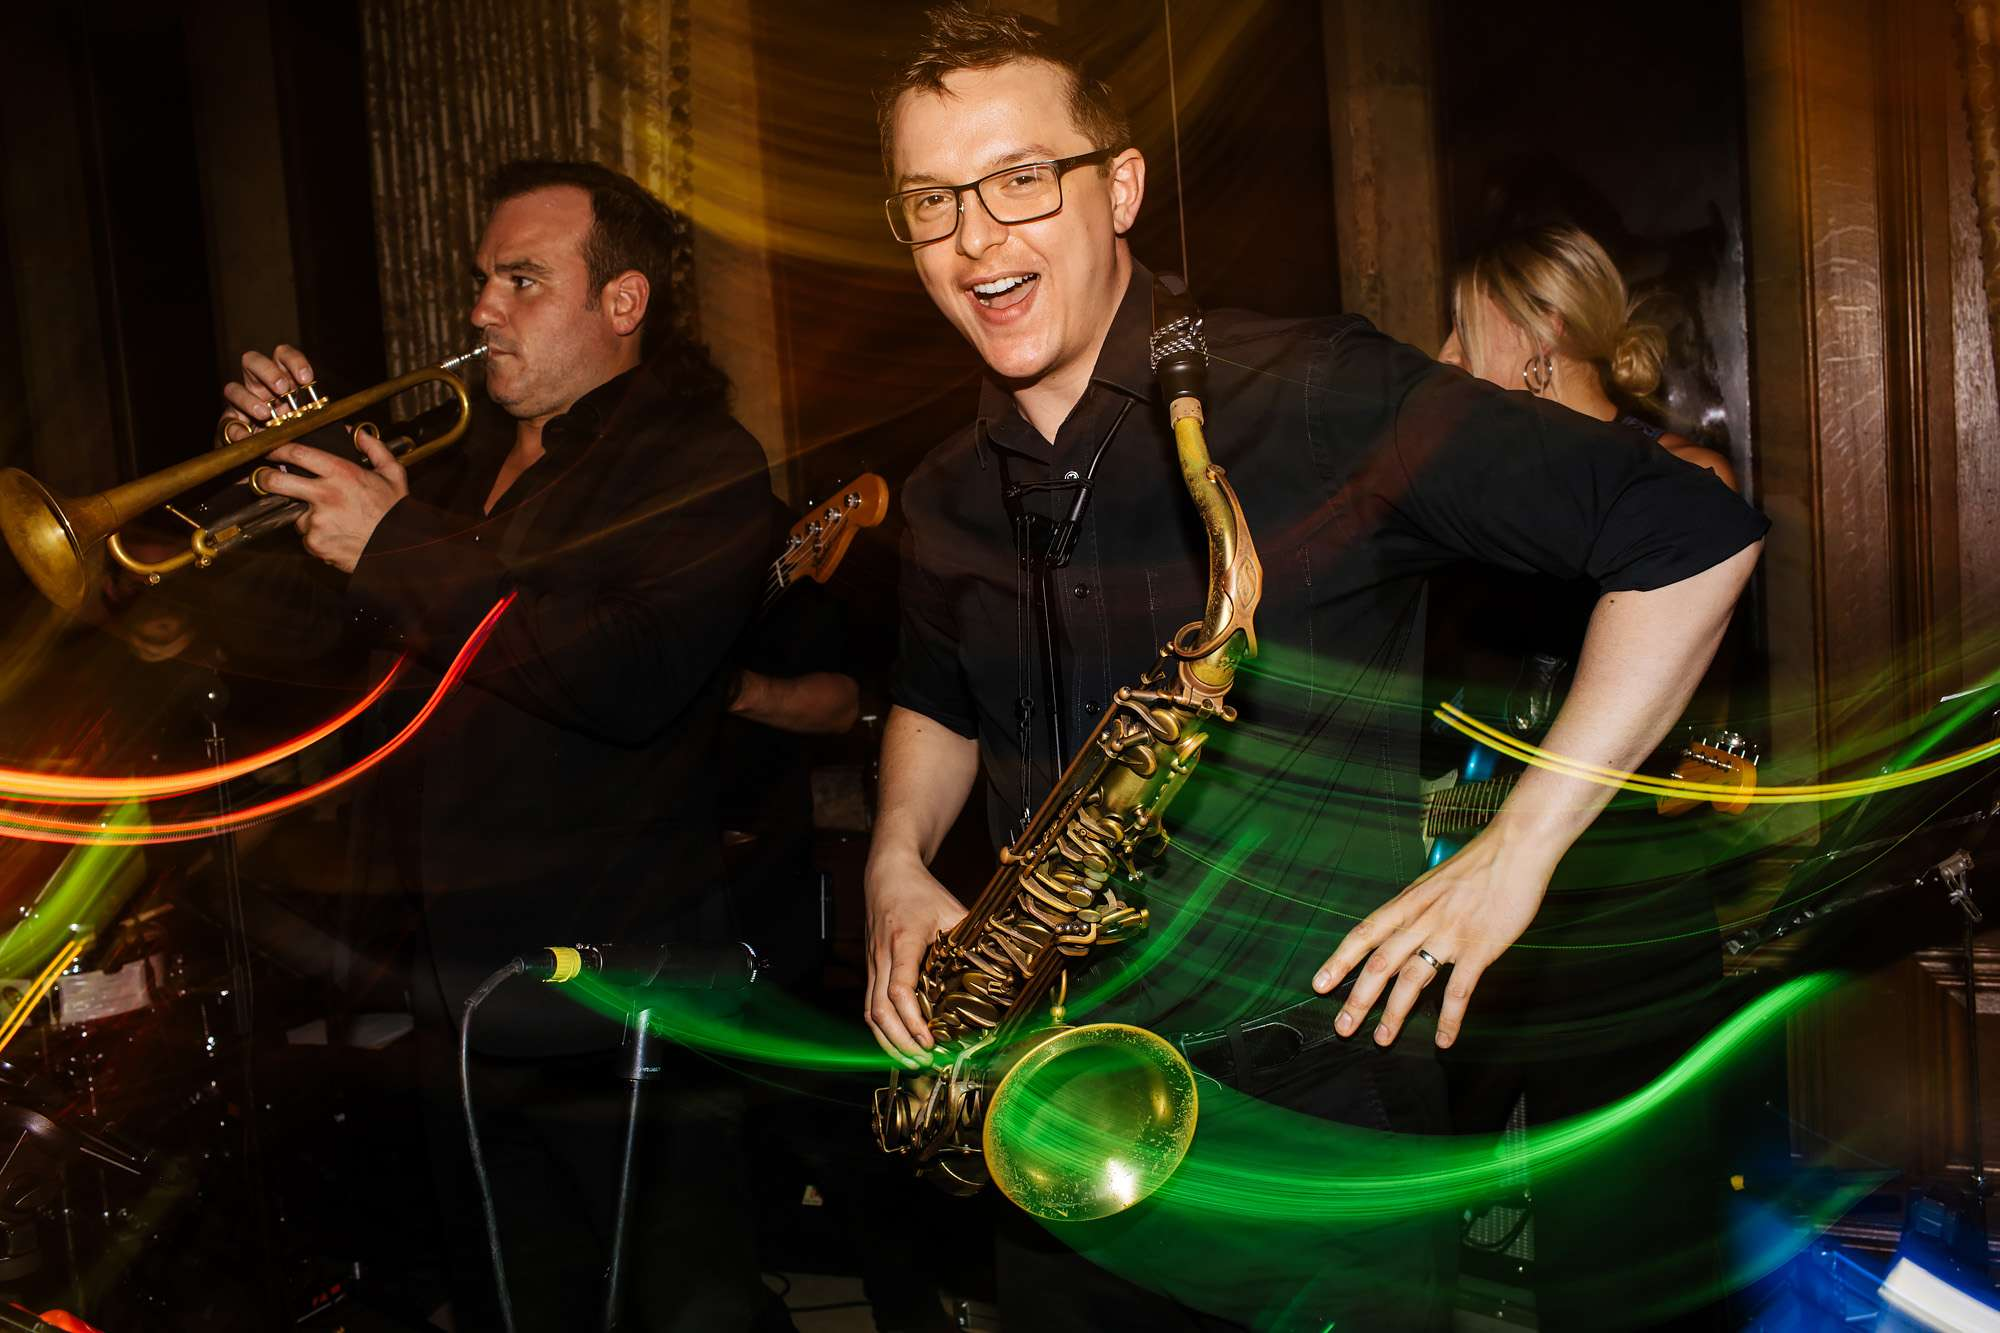 Saxophonist dancing at a wedding